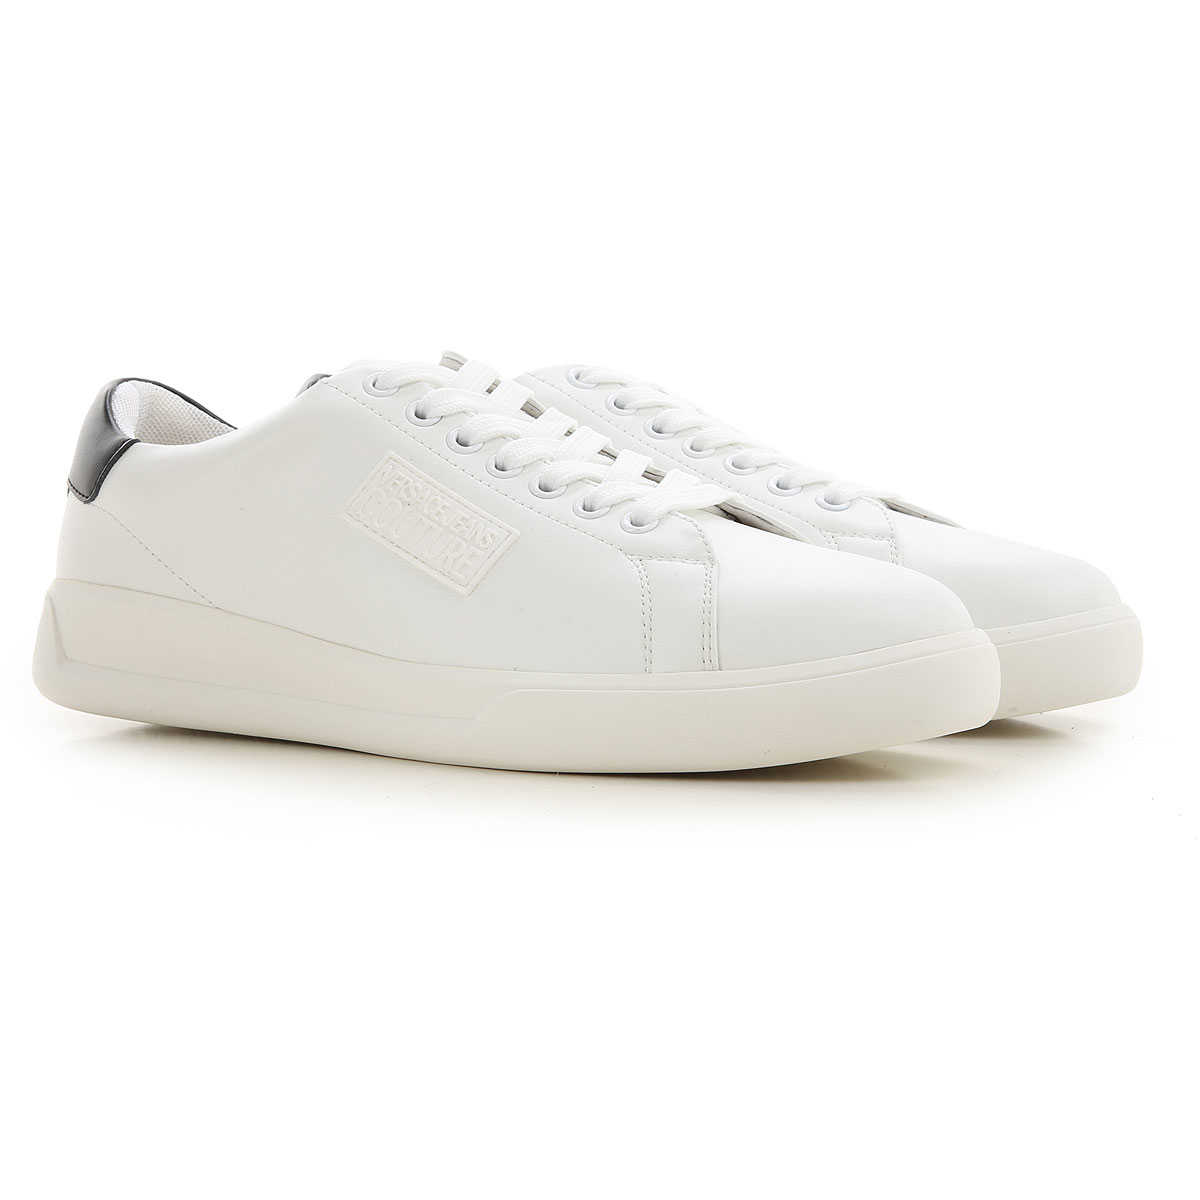 Versace Jeans Couture Sneakers for Men White SE - GOOFASH